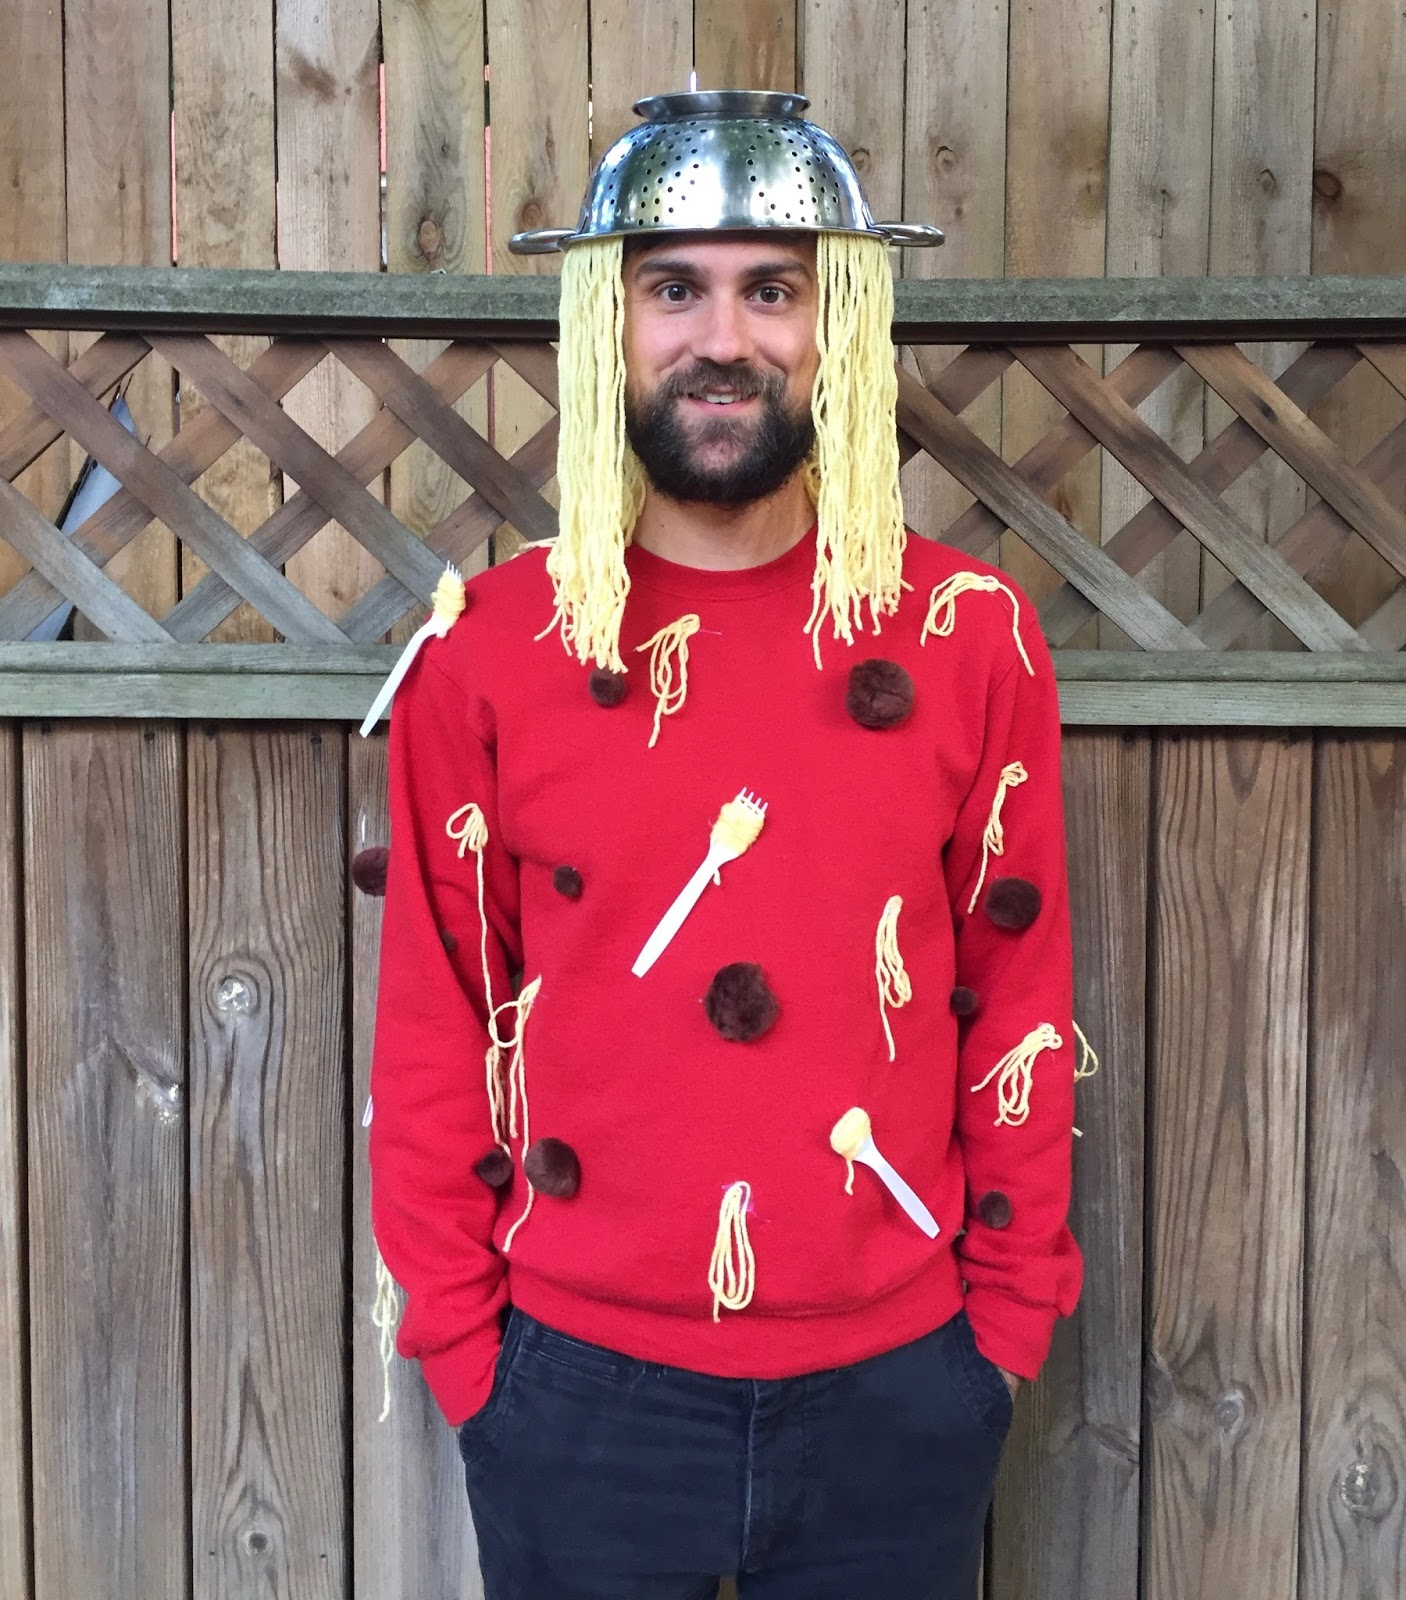 Our Halloween Costumes Spaghetti u0026 Parmesan Cheese  sc 1 st  The Surznick Common Room & Our Halloween Costumes: Spaghetti u0026 Parmesan Cheese - The Surznick ...